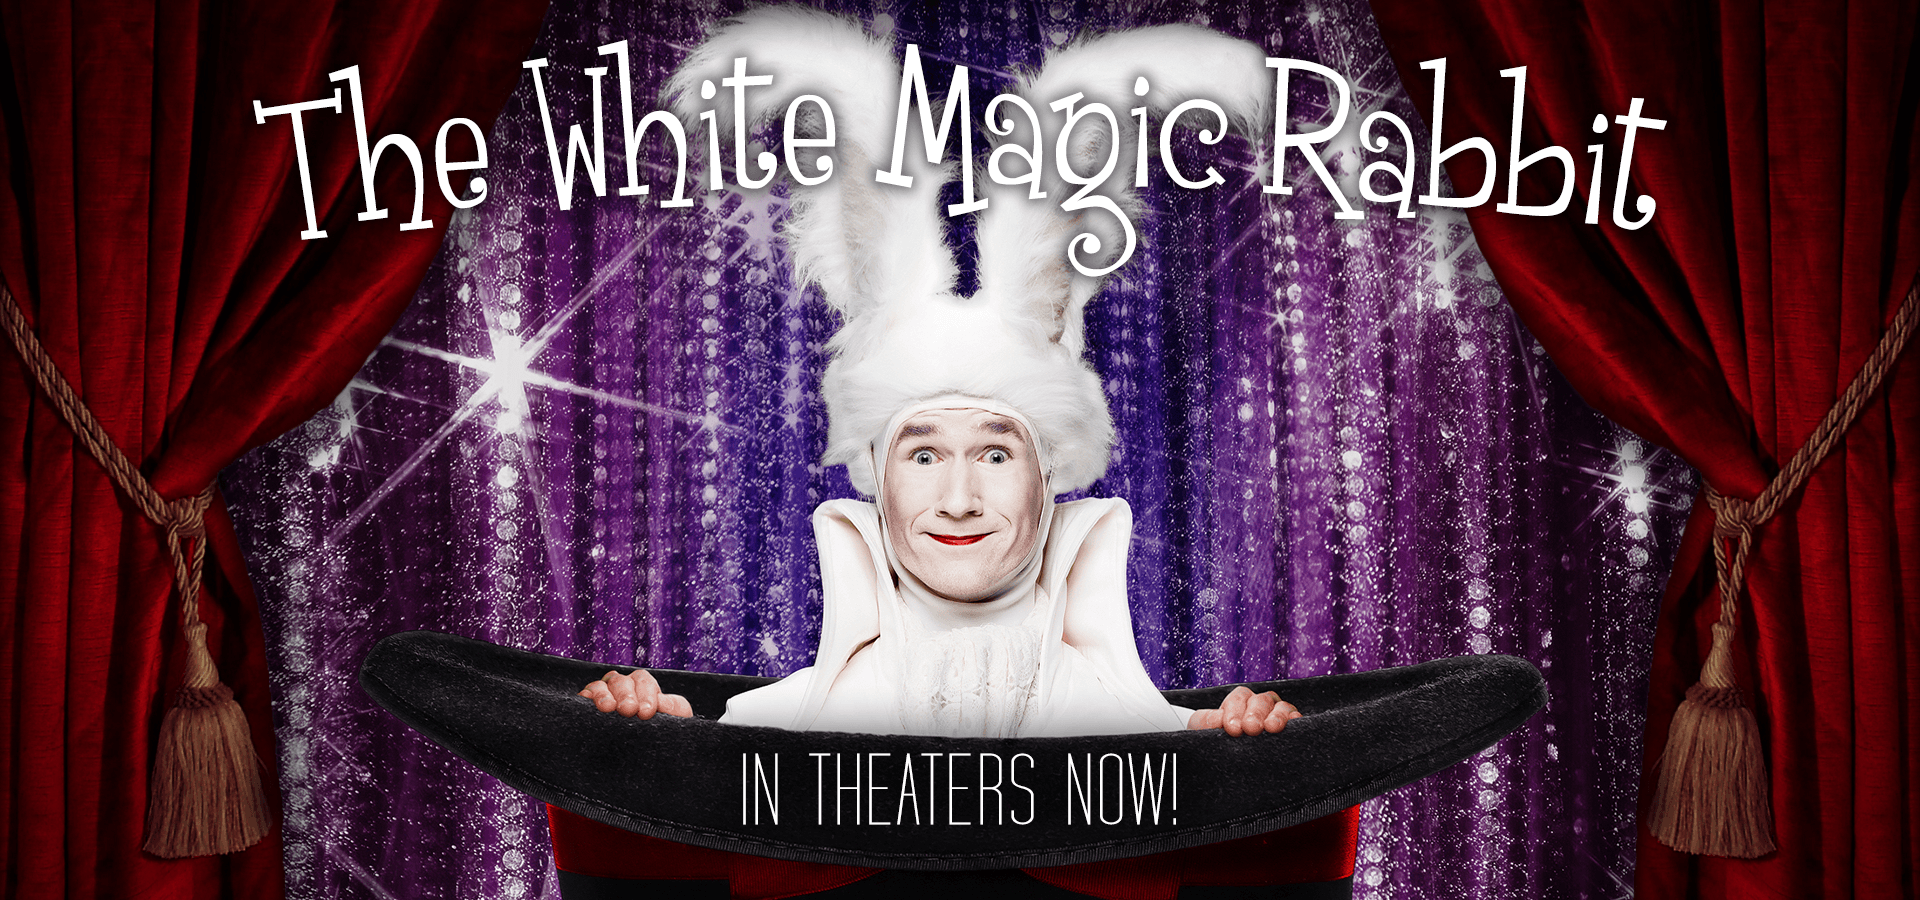 The White Magic Rabbit: In Theaters Now!